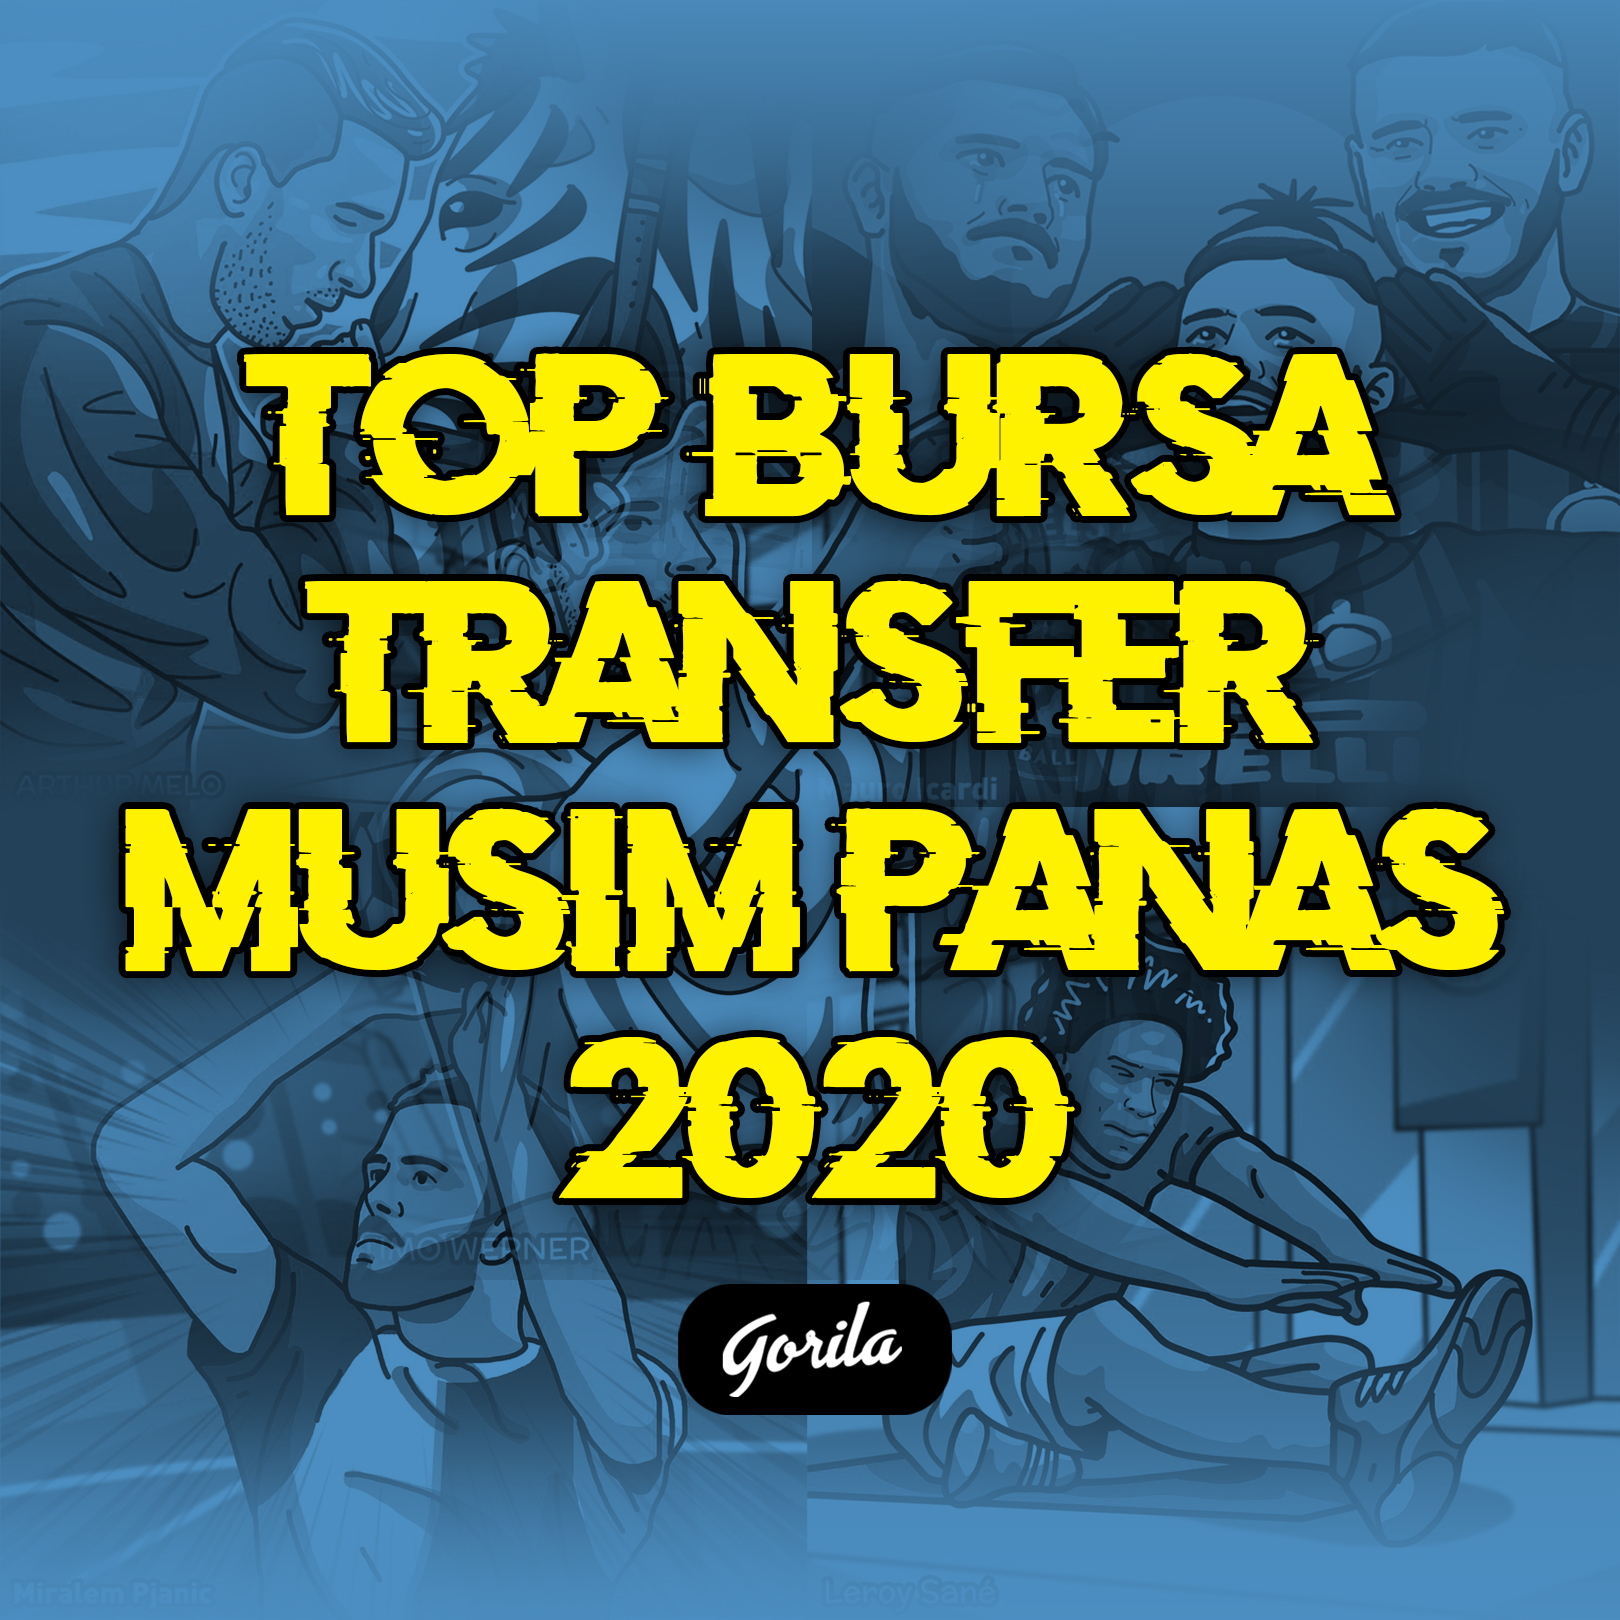 Top Bursa Transfer Musim Panas 2020